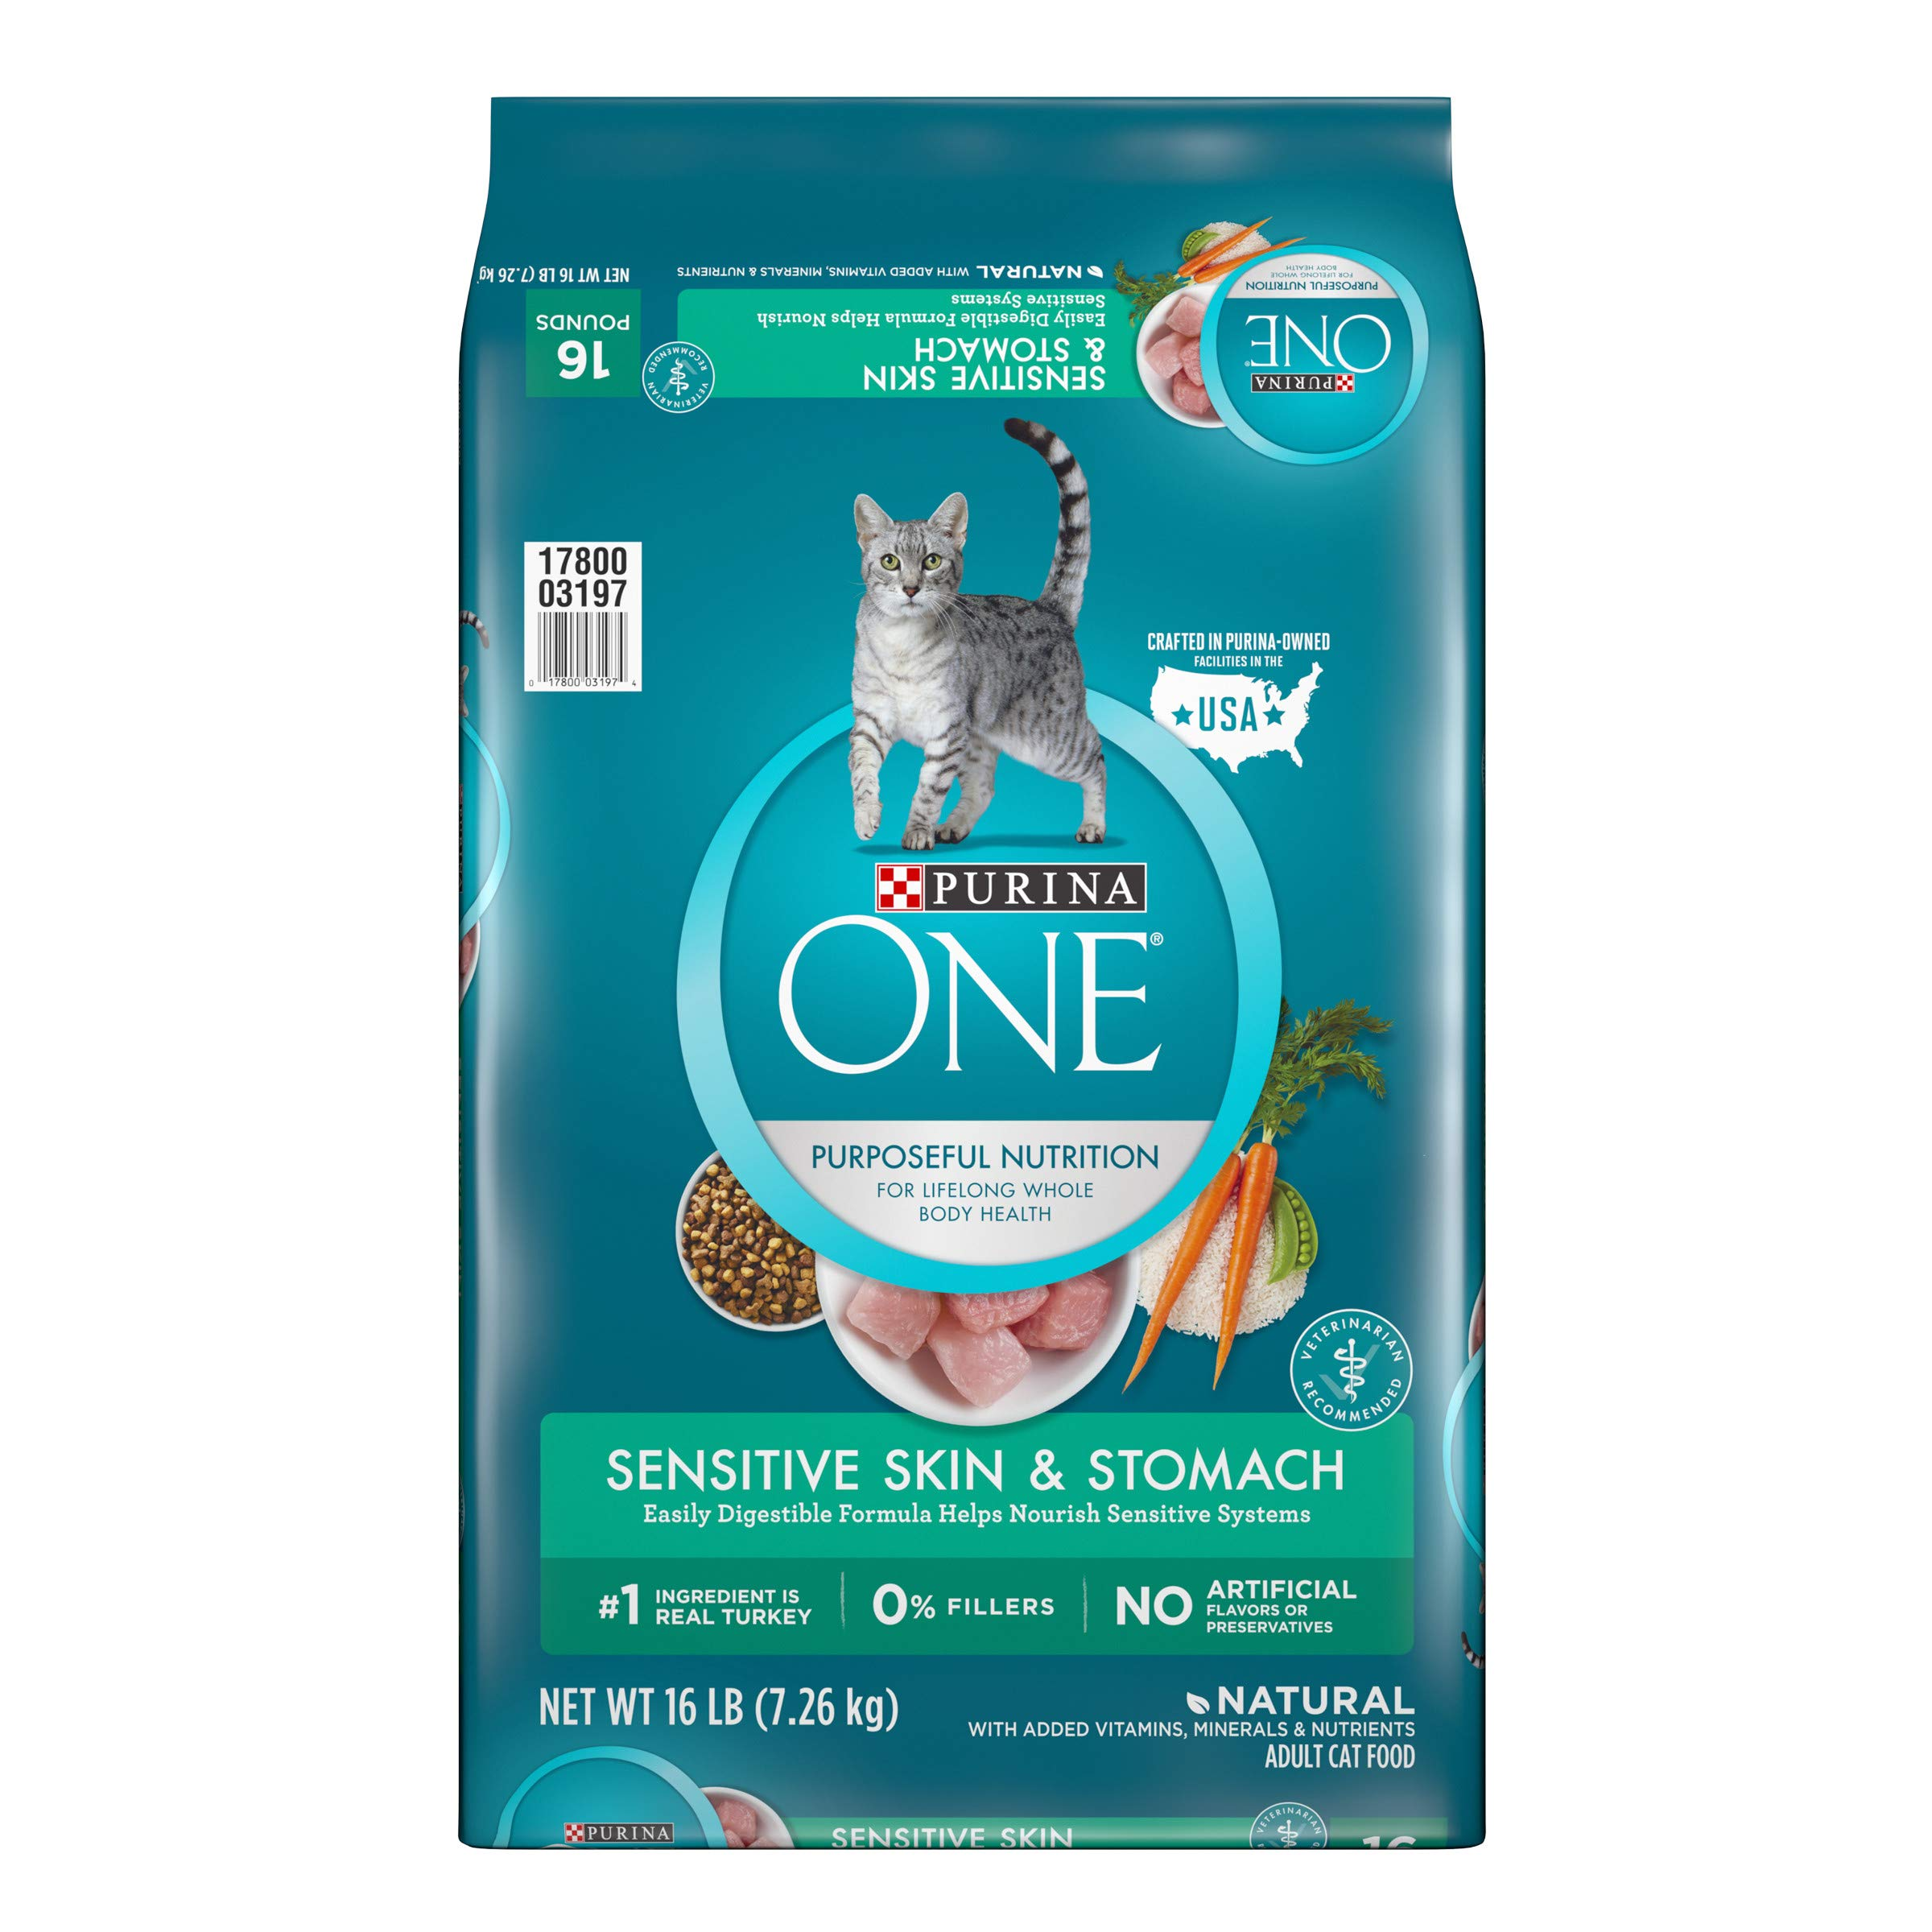 Purina ONE Sensitive Stomach, Sensitive Skin, Natural Dry Cat Food; Sensitive Skin & Stomach Formula - 16 lb. Bag by Purina ONE (Image #1)